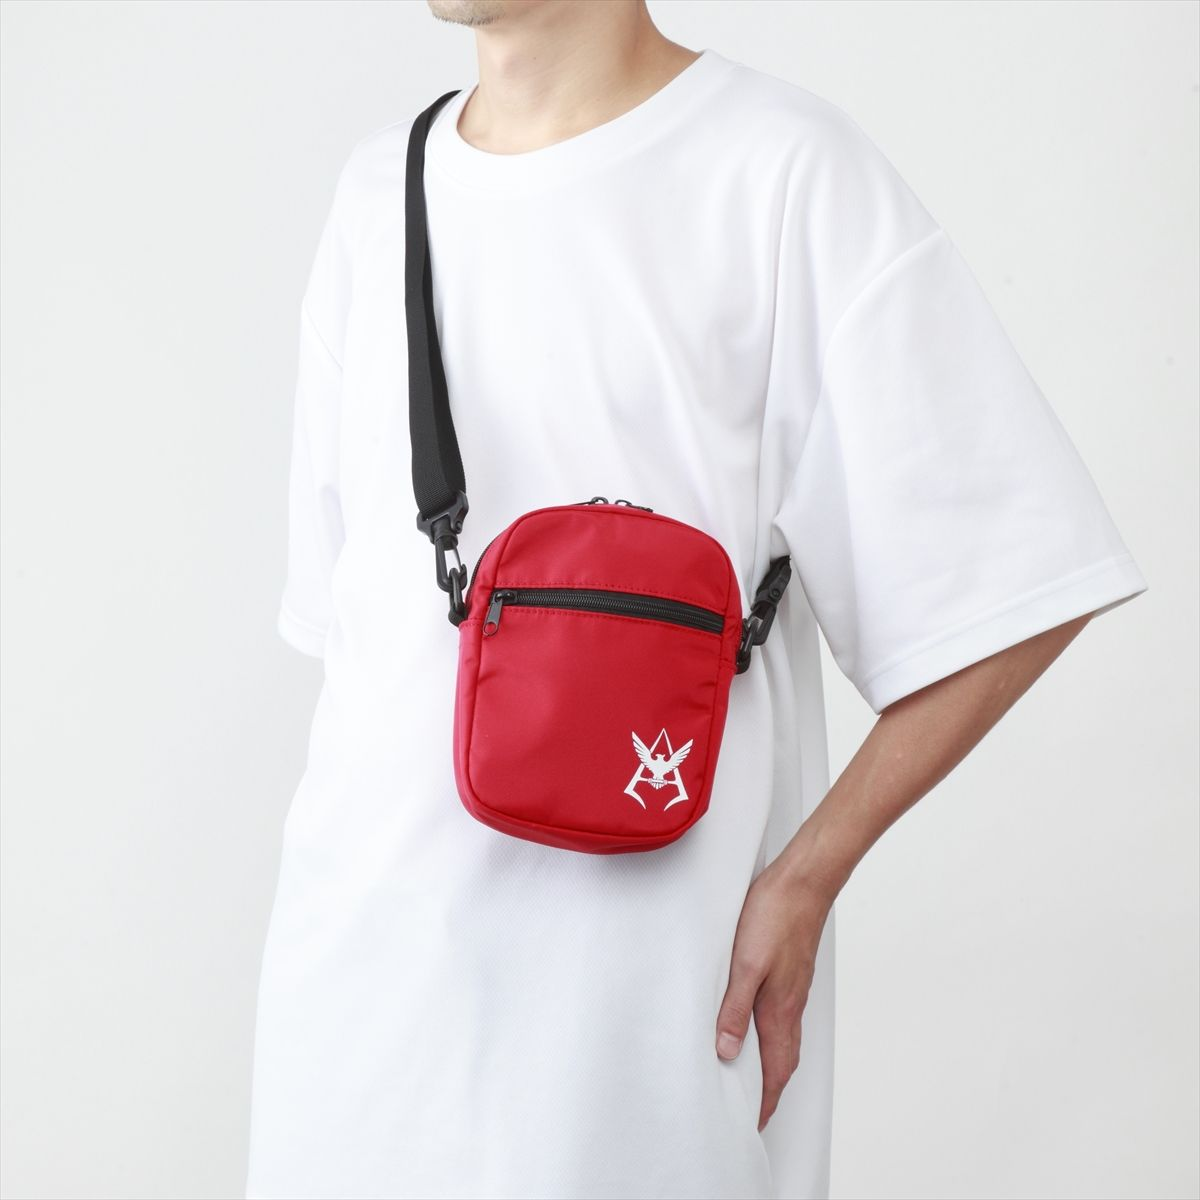 Mobile Suit Gundam Shoulder Bag